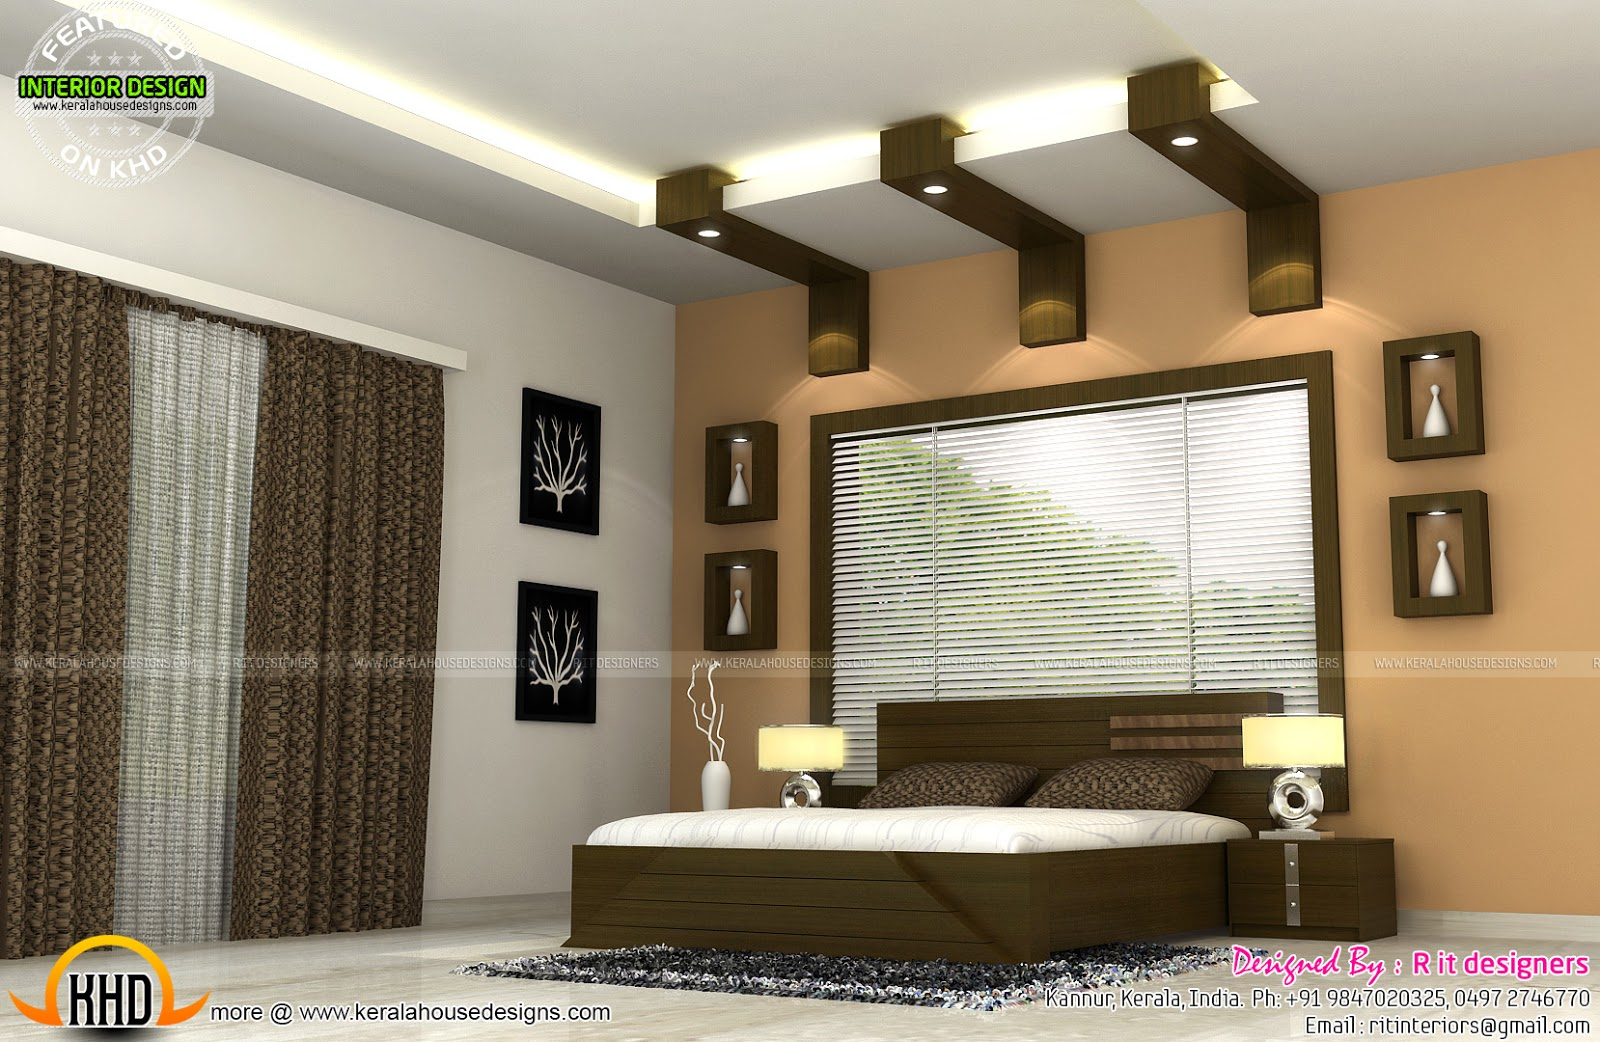 Interiors of bedrooms and kitchen kerala home design and for Home inner design